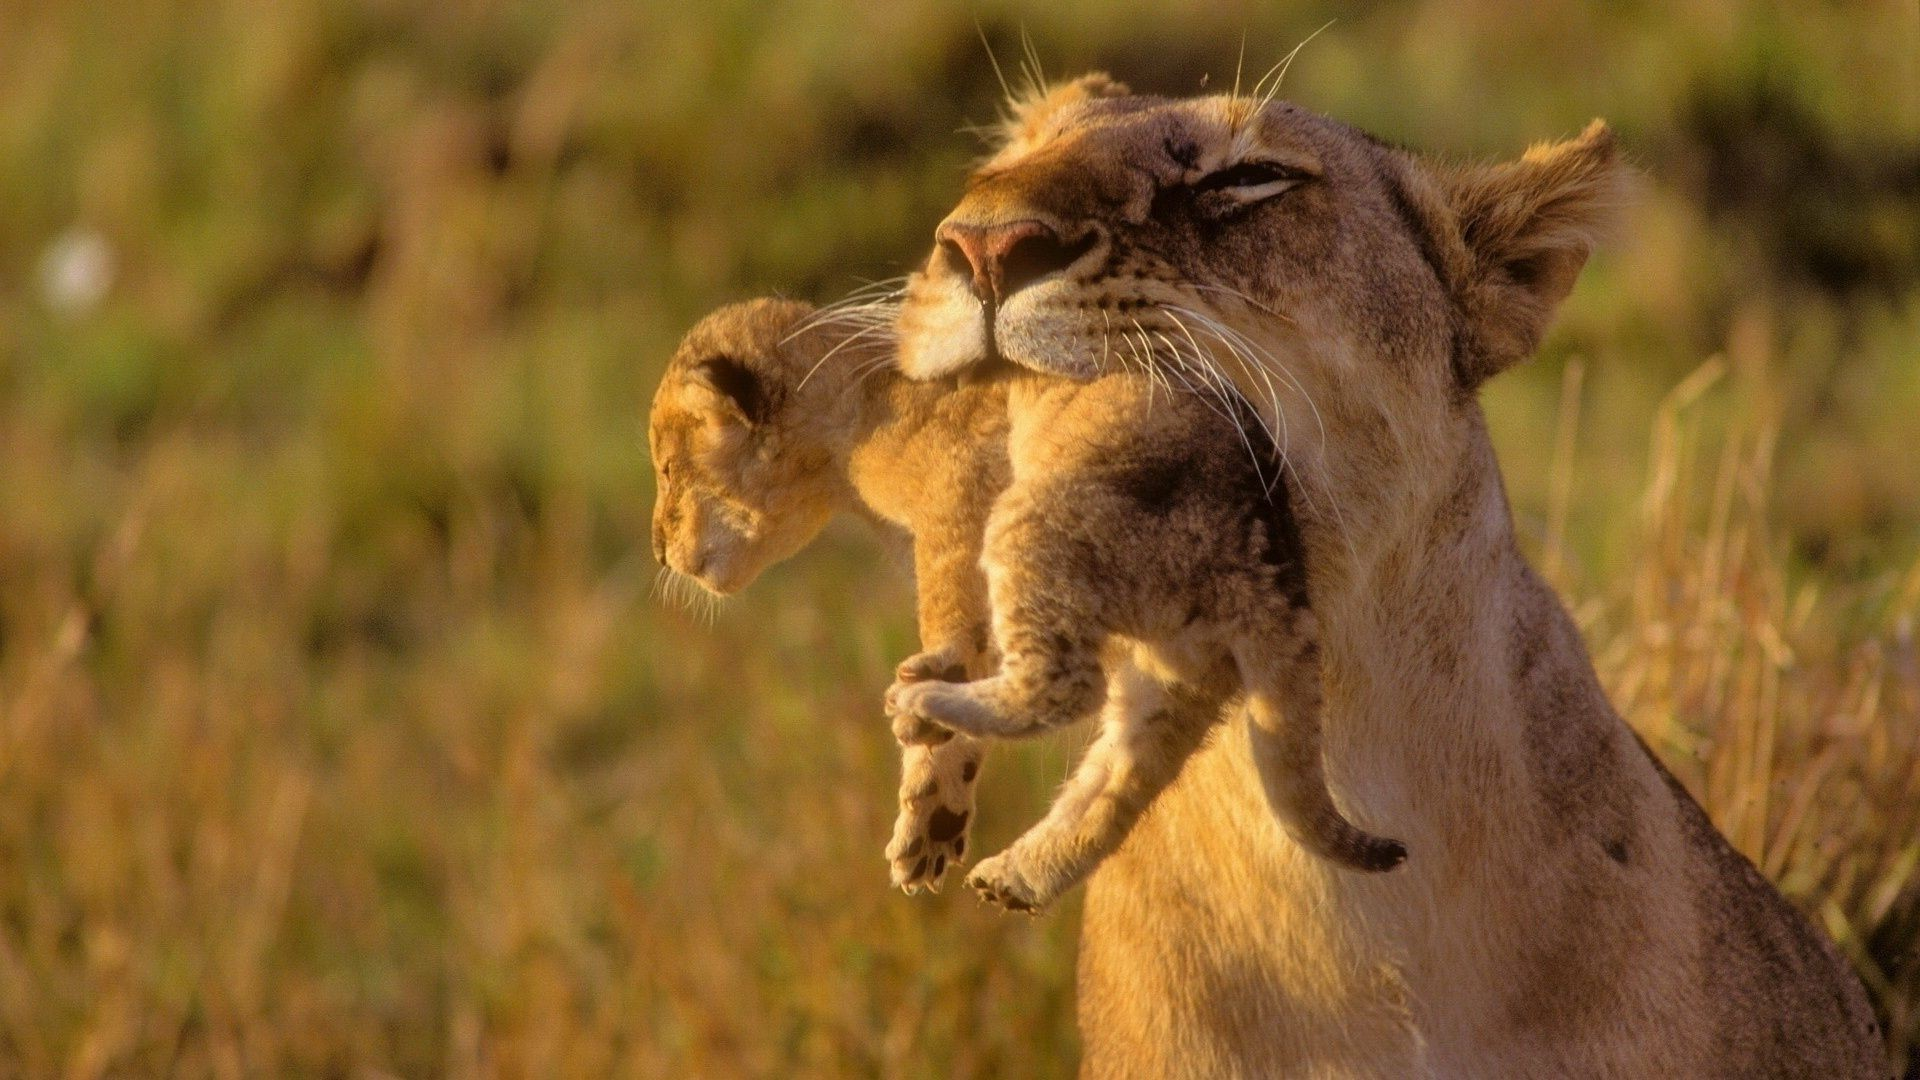 The lioness holds baby cub in teeth